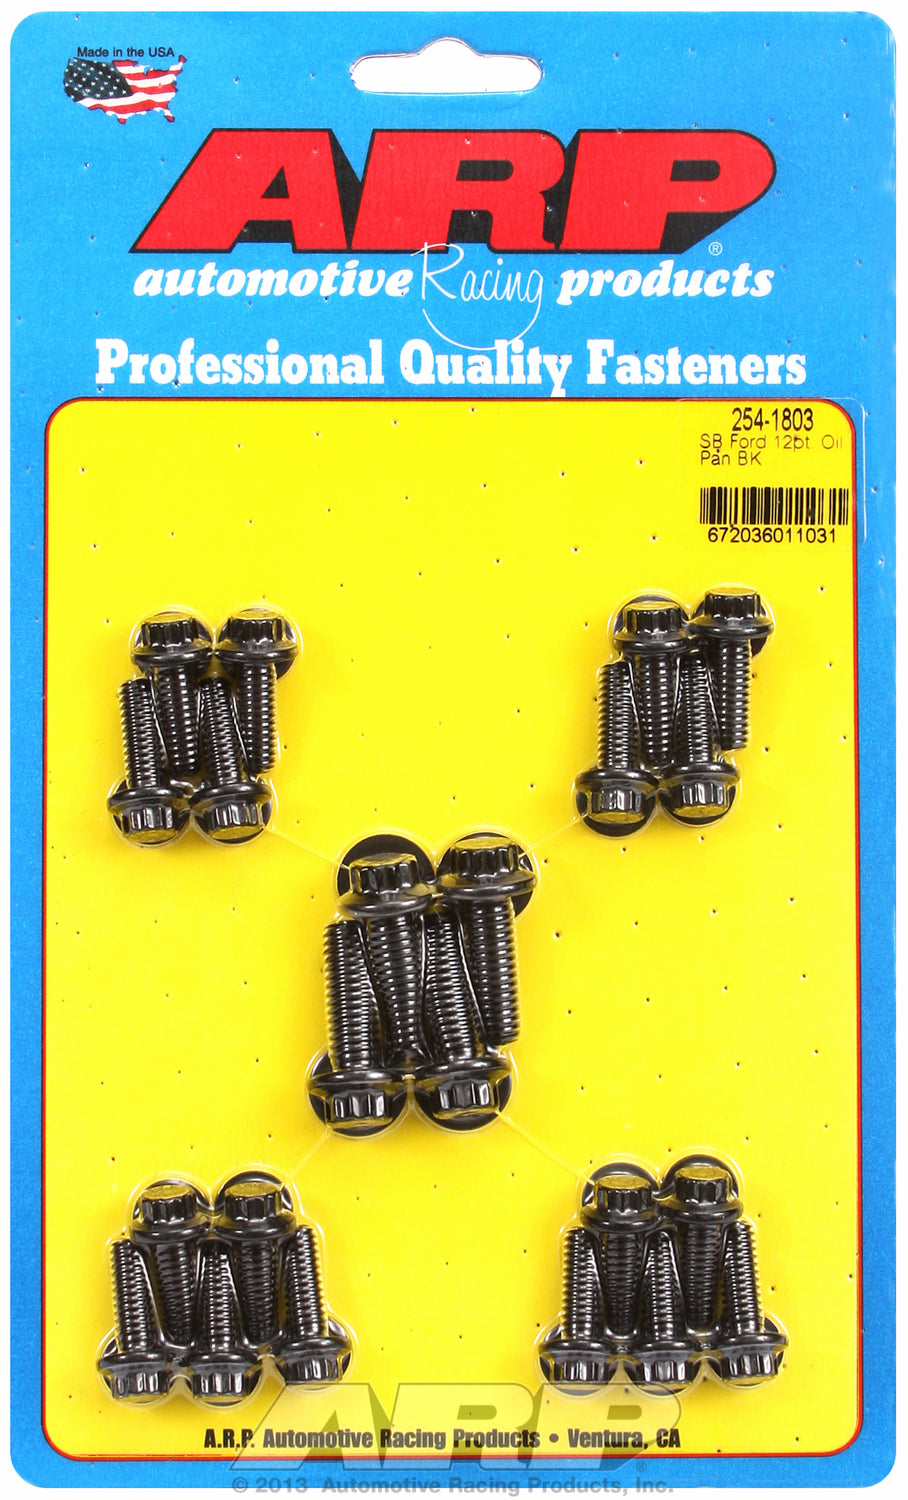 12-Pt Head Black Oxide Oil Pan Bolt Kit for Ford 302-351W (late model with side rails)